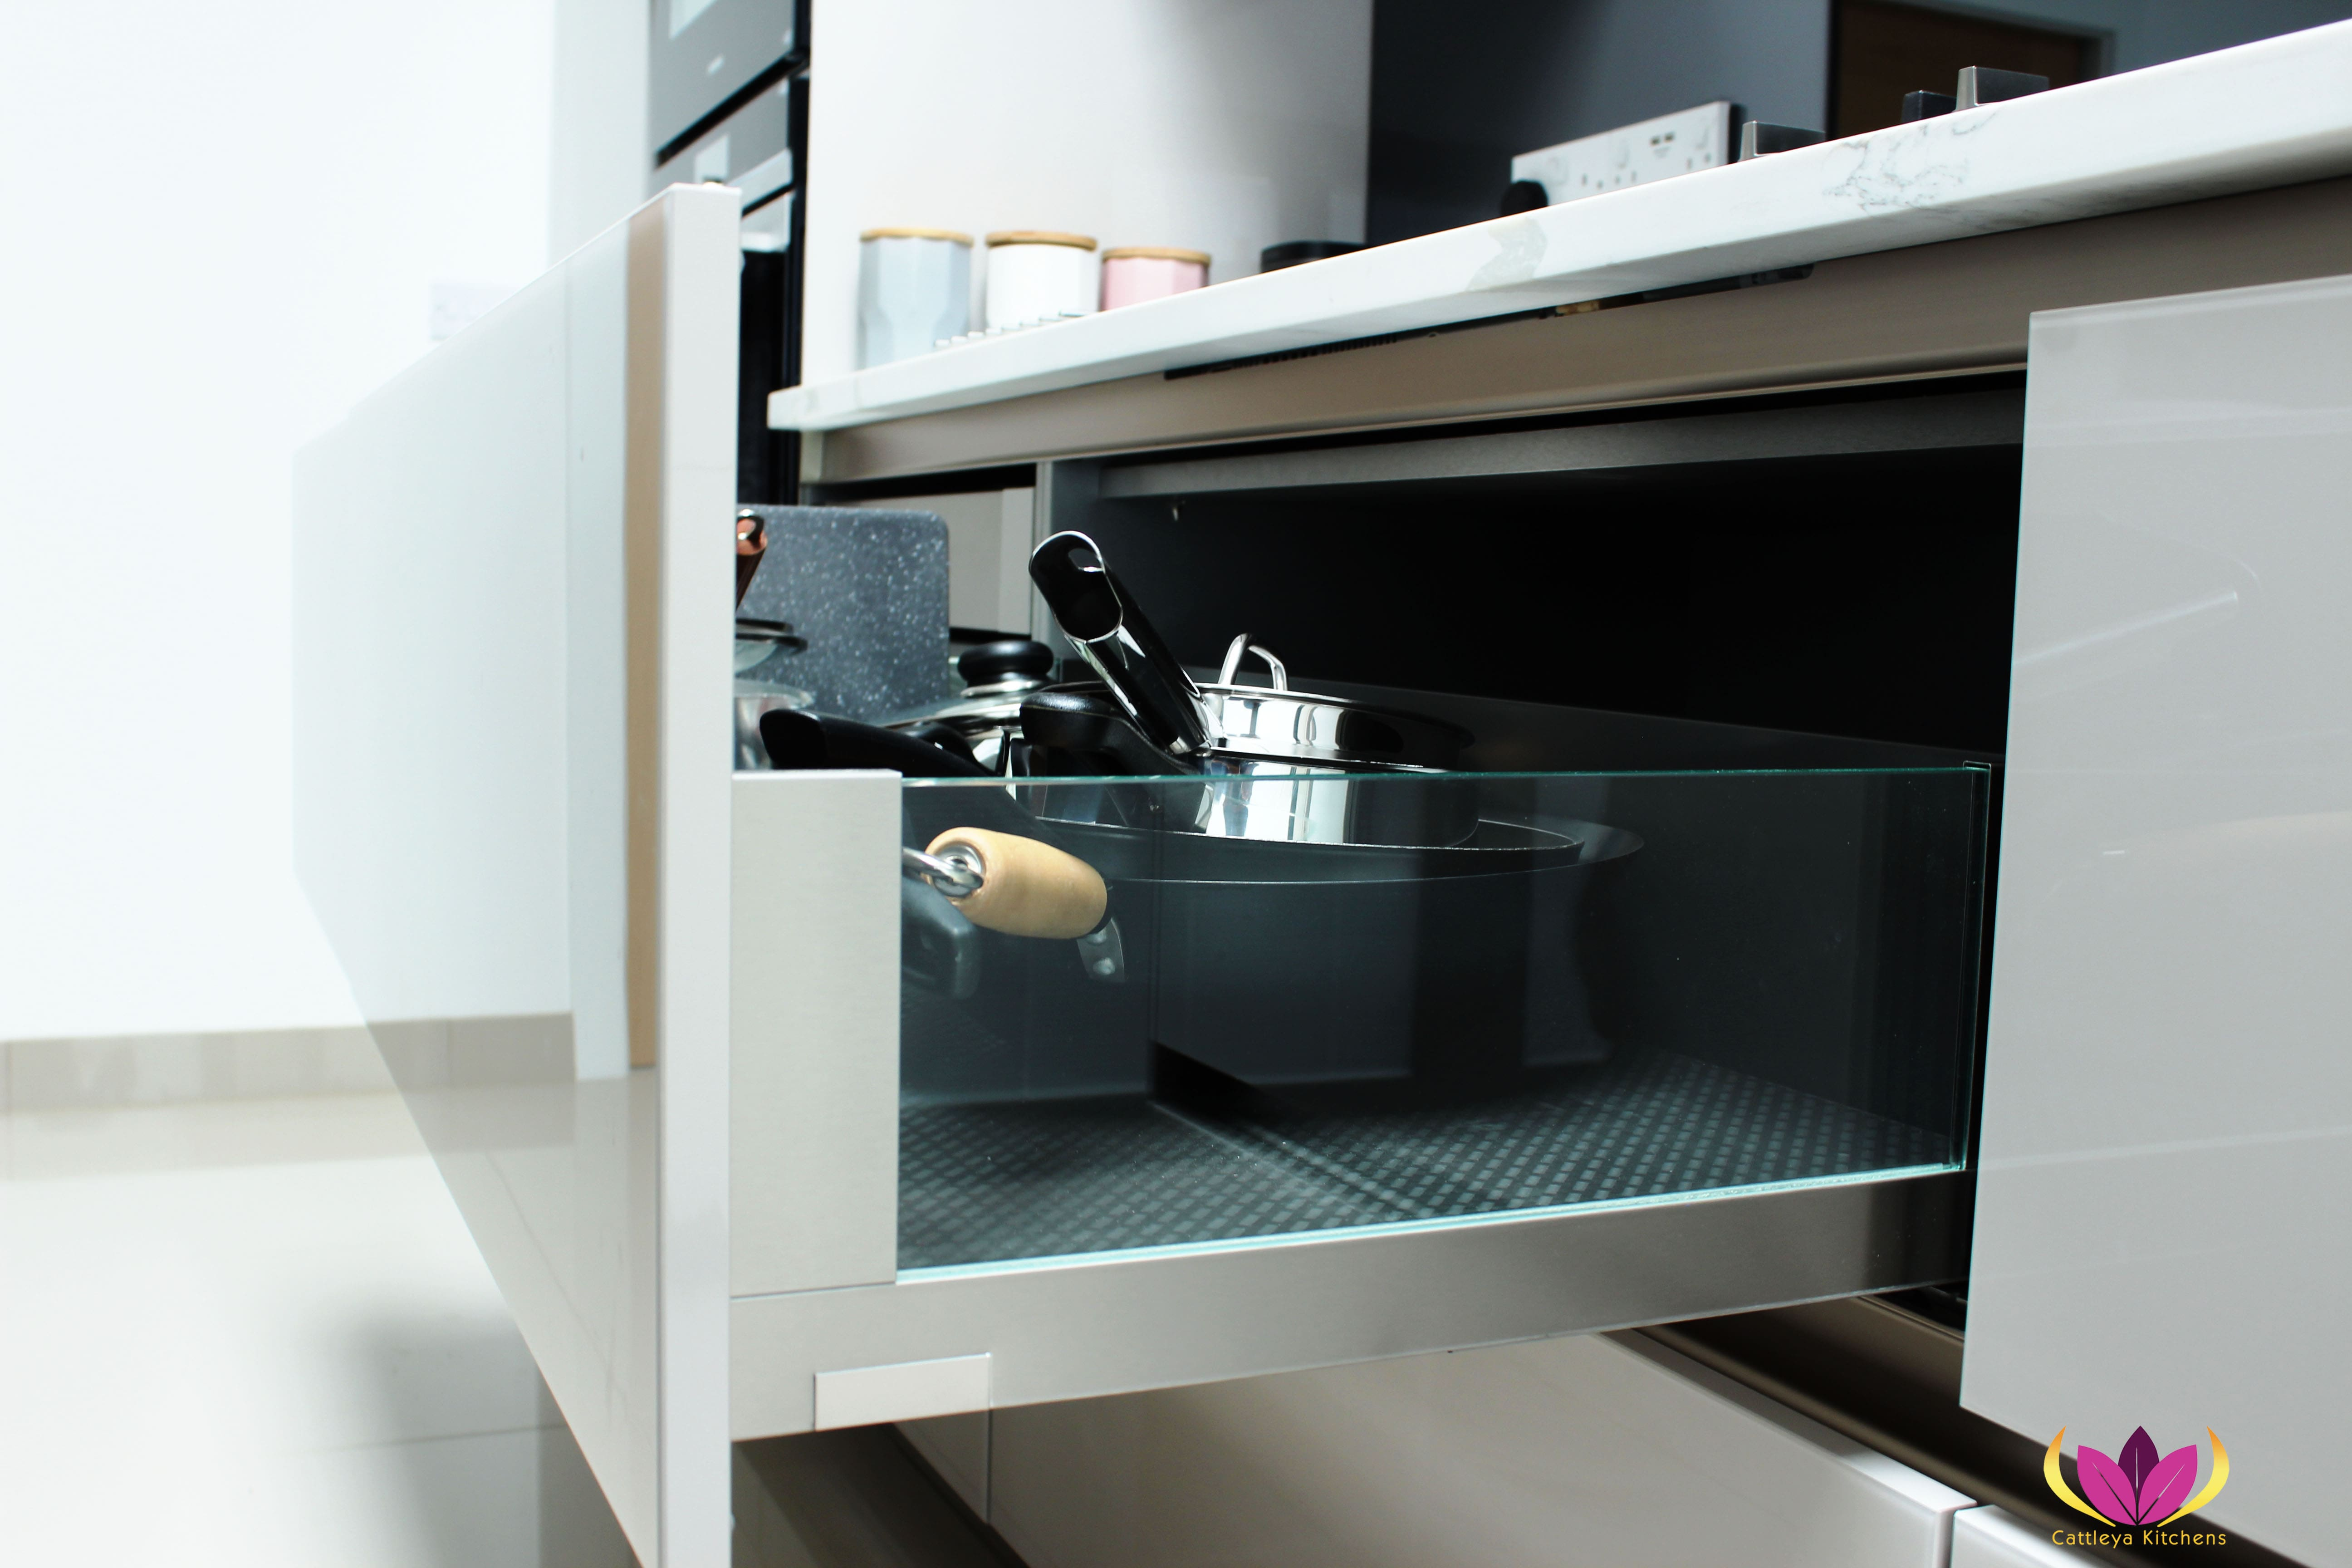 Closer look inside handlesless drawers - Greenford Finished Kitchen Project